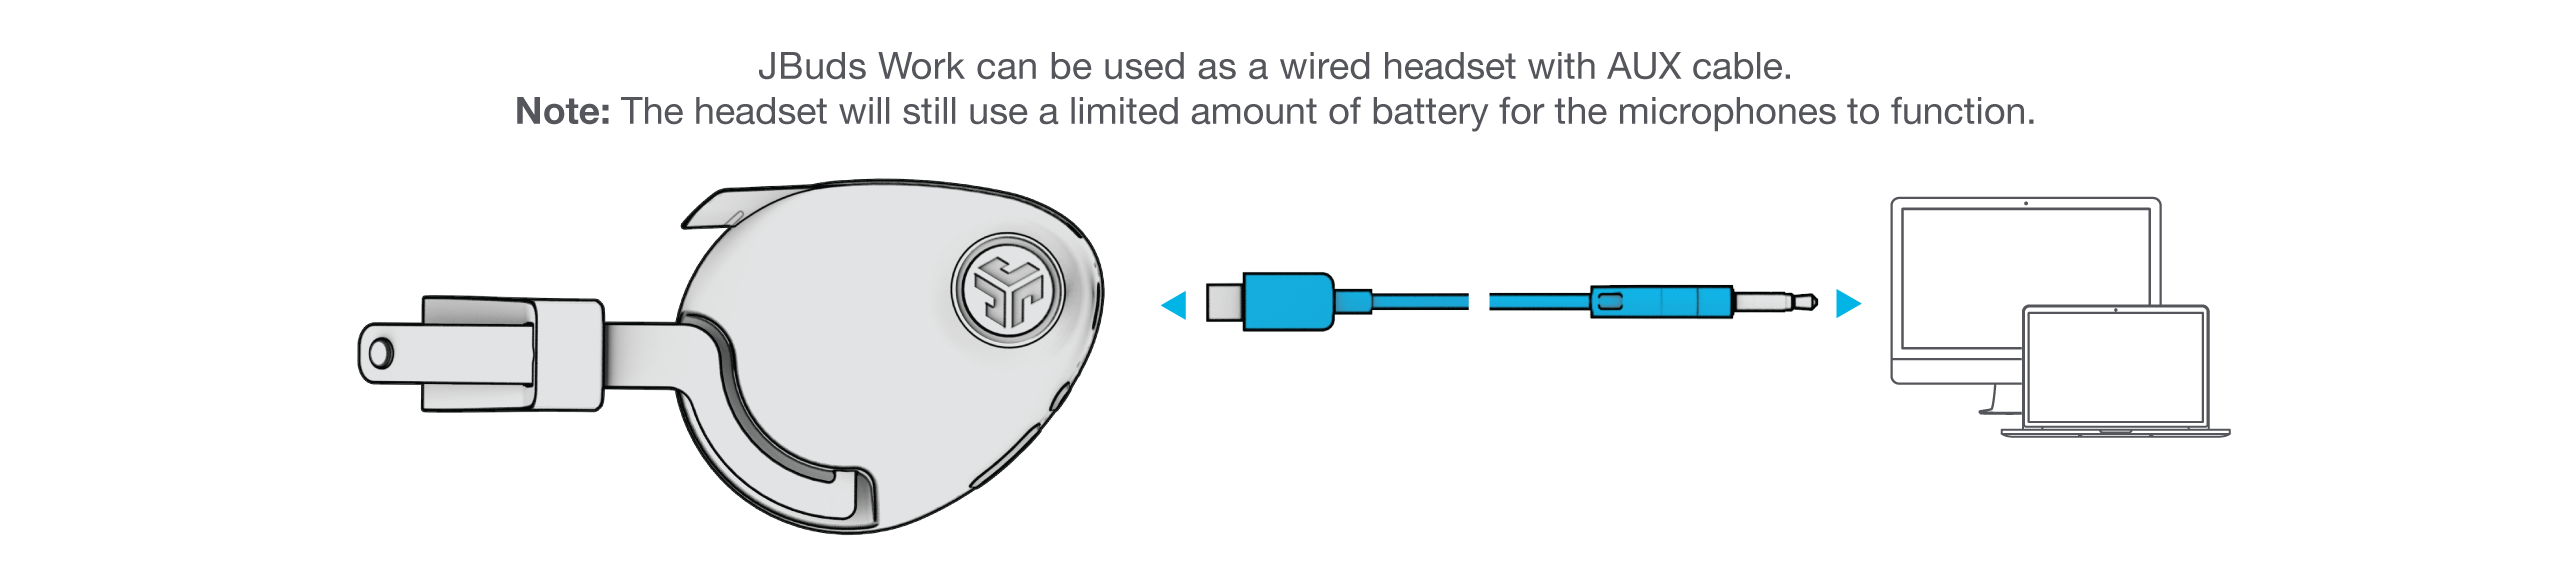 How to plug in AUX cable for JBuds Work Wireless Over-Ear Headset